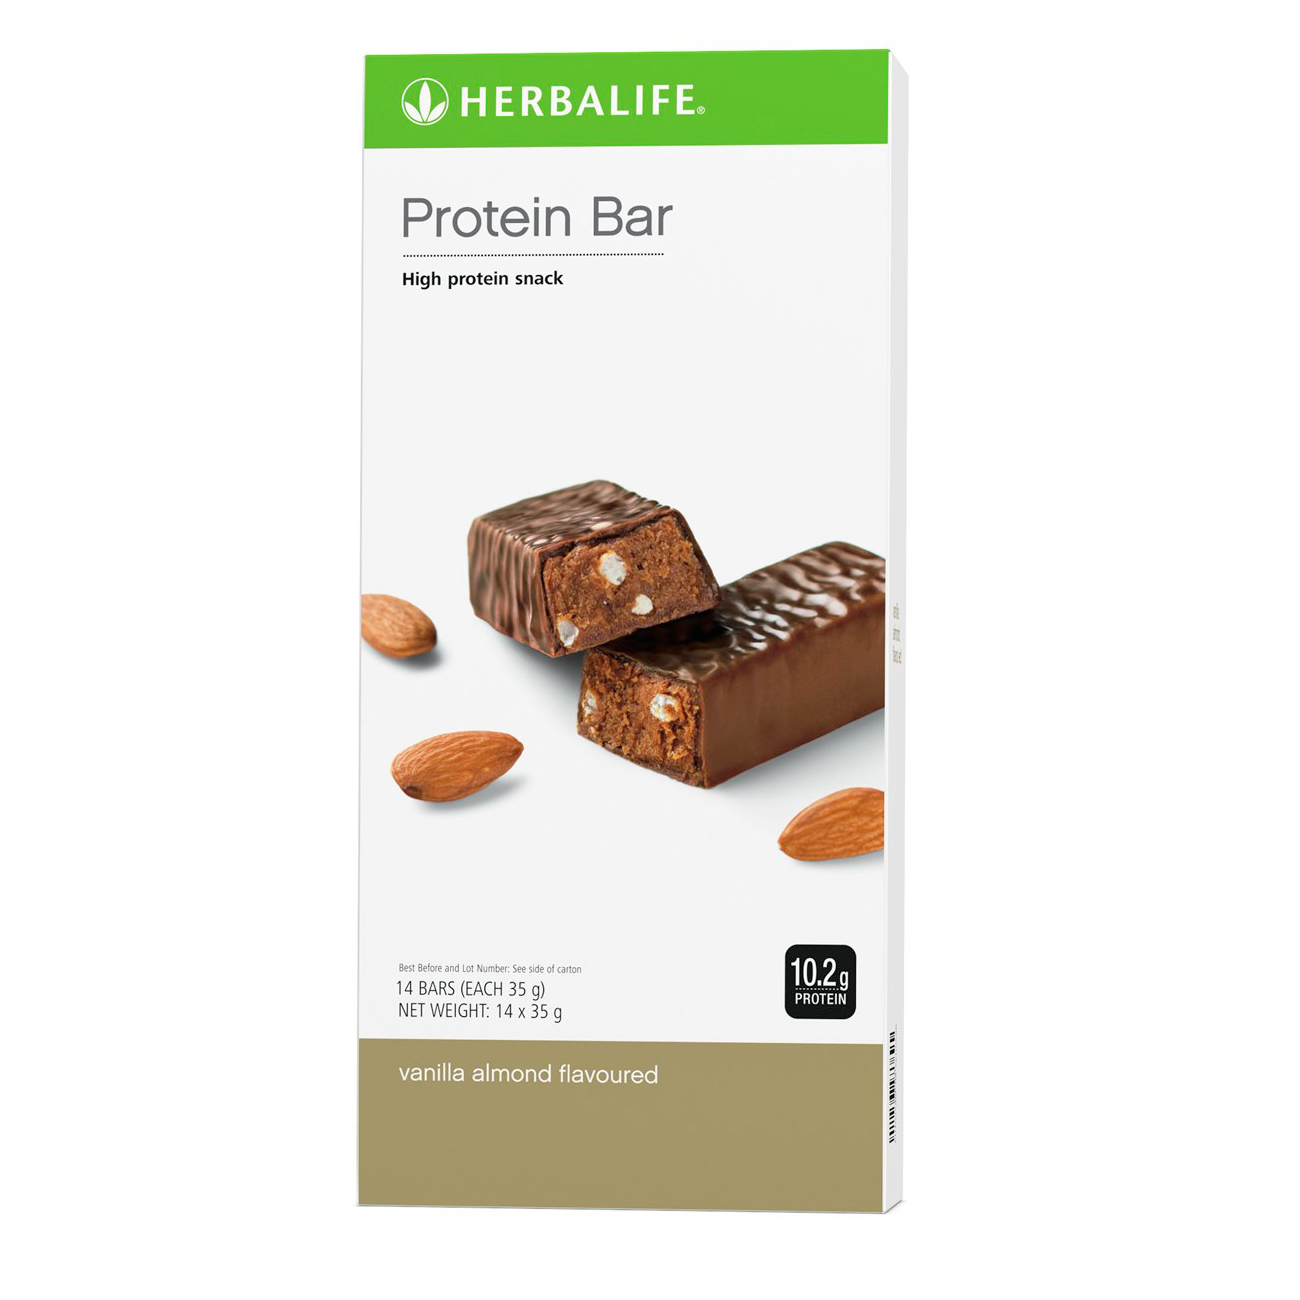 Protein Bars  Vanilla Almond Flavoured product shot